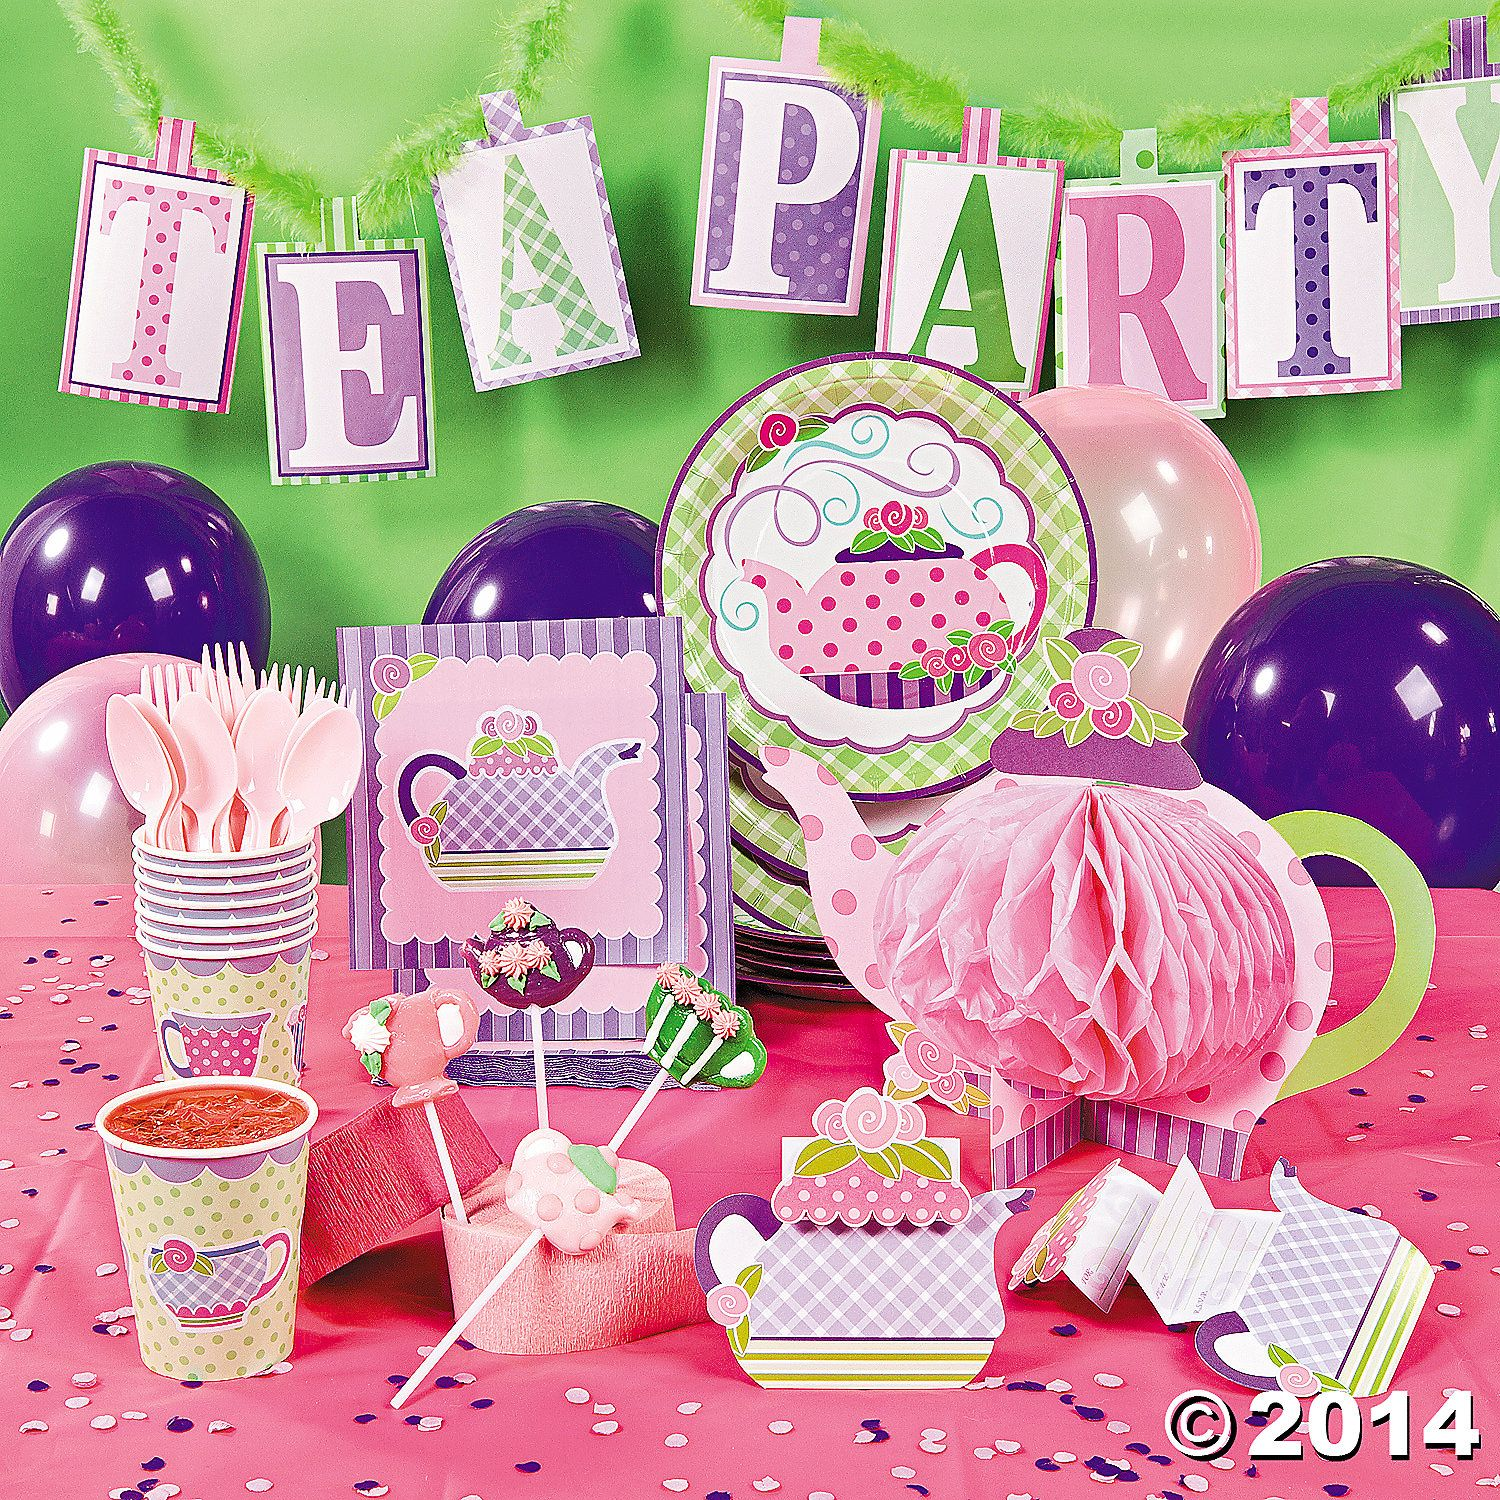 Tea+Party+Deluxe+Party+Pack+-+OrientalTrading.com | Princess party ...